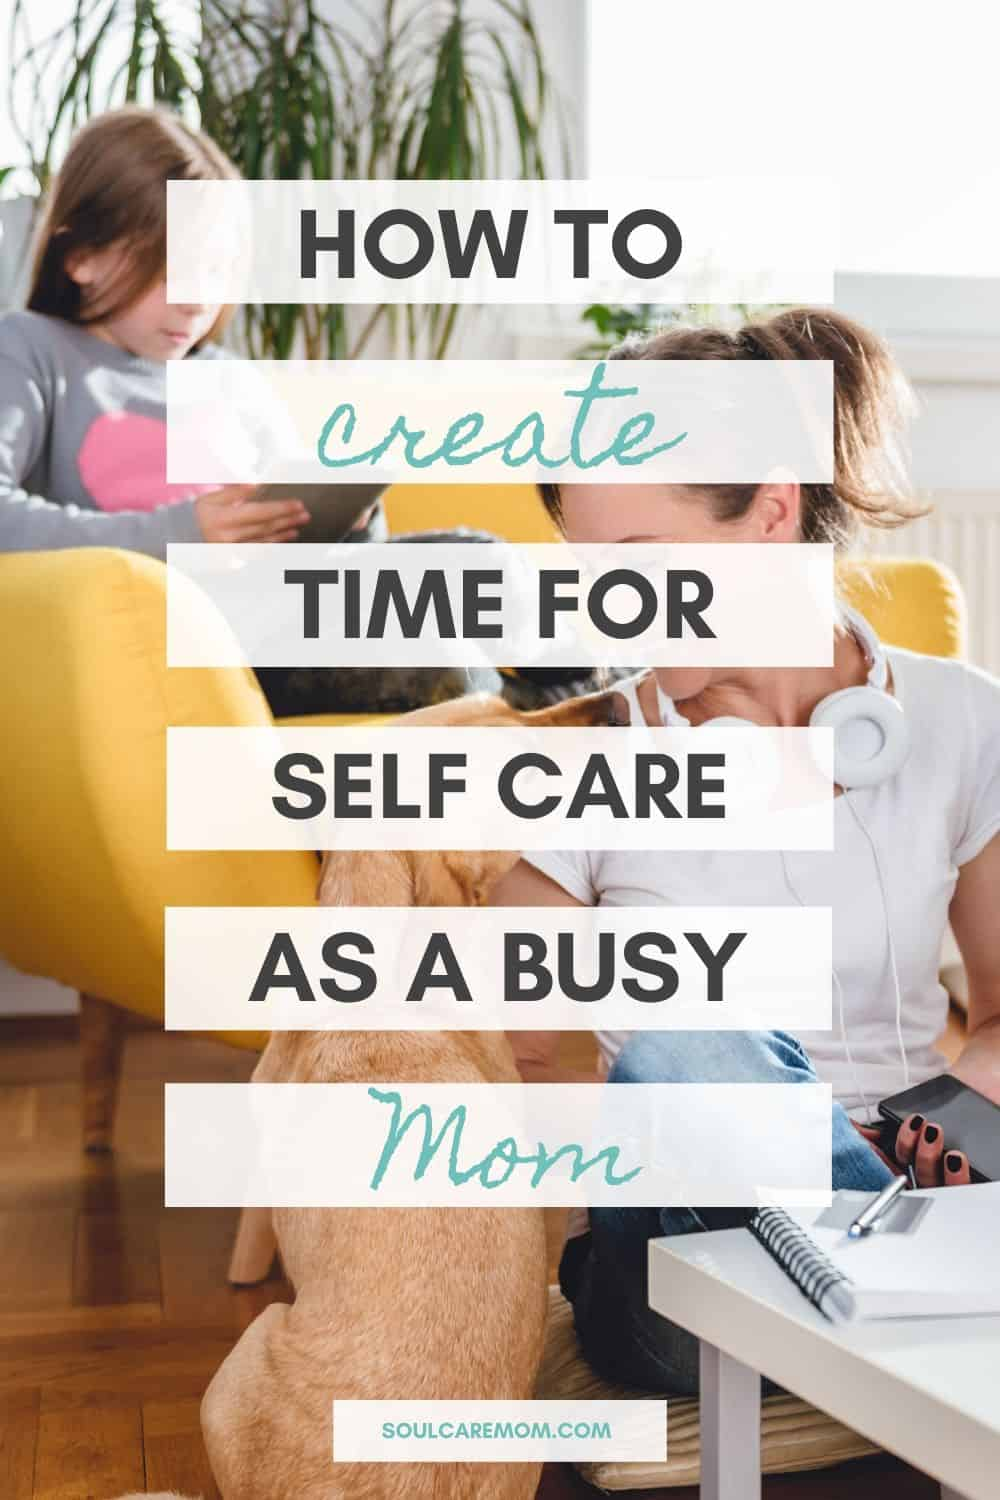 No Time for Self Care - How to Create Time for Self Care as a Busy Mom Soul Care Mom